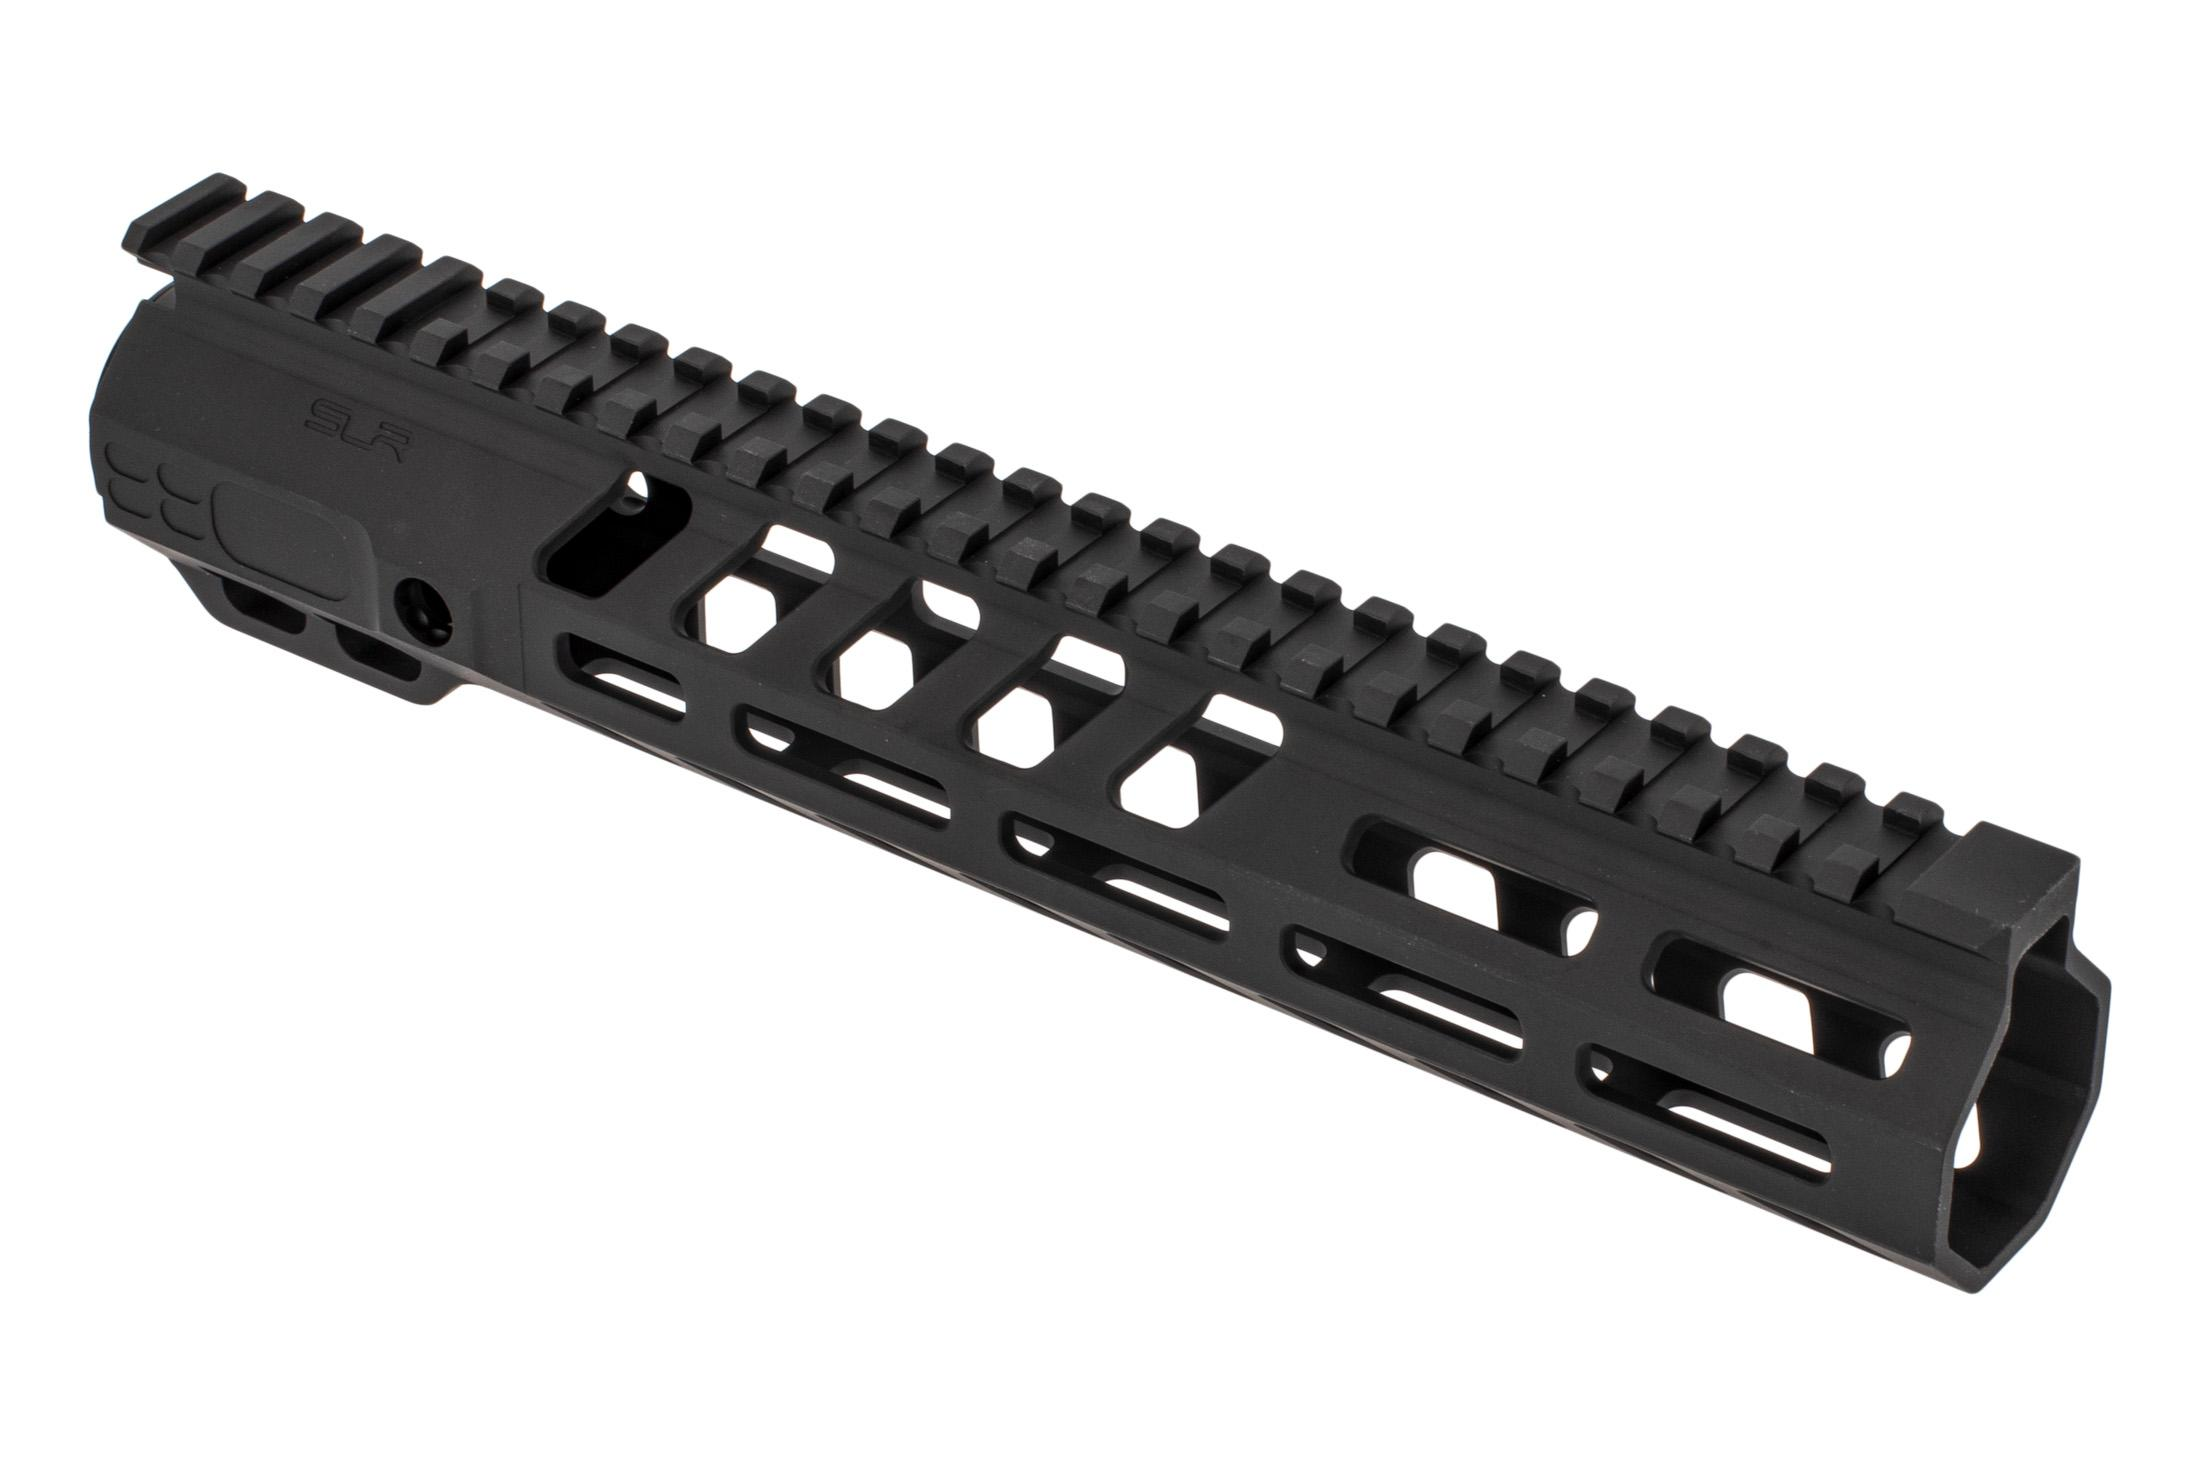 SLR Rifleworks Ion HDX series 10.7 M-LOK rail for the AR-15 with full length top rail with black anodized finish.